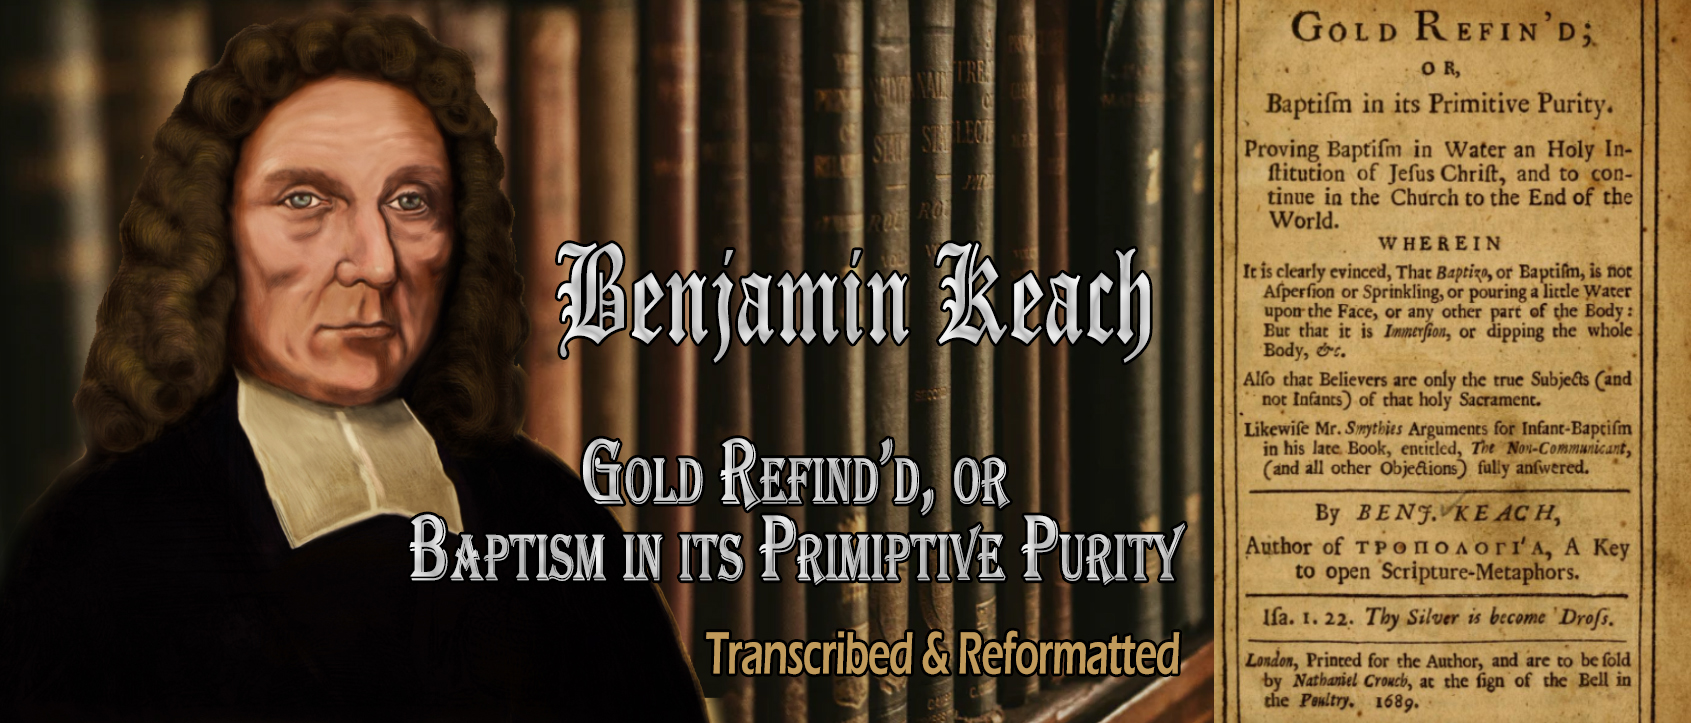 Benjamin Keach's Gold Refined, or Baptism in its Primitive Puirty (1689) transcribed and formatted